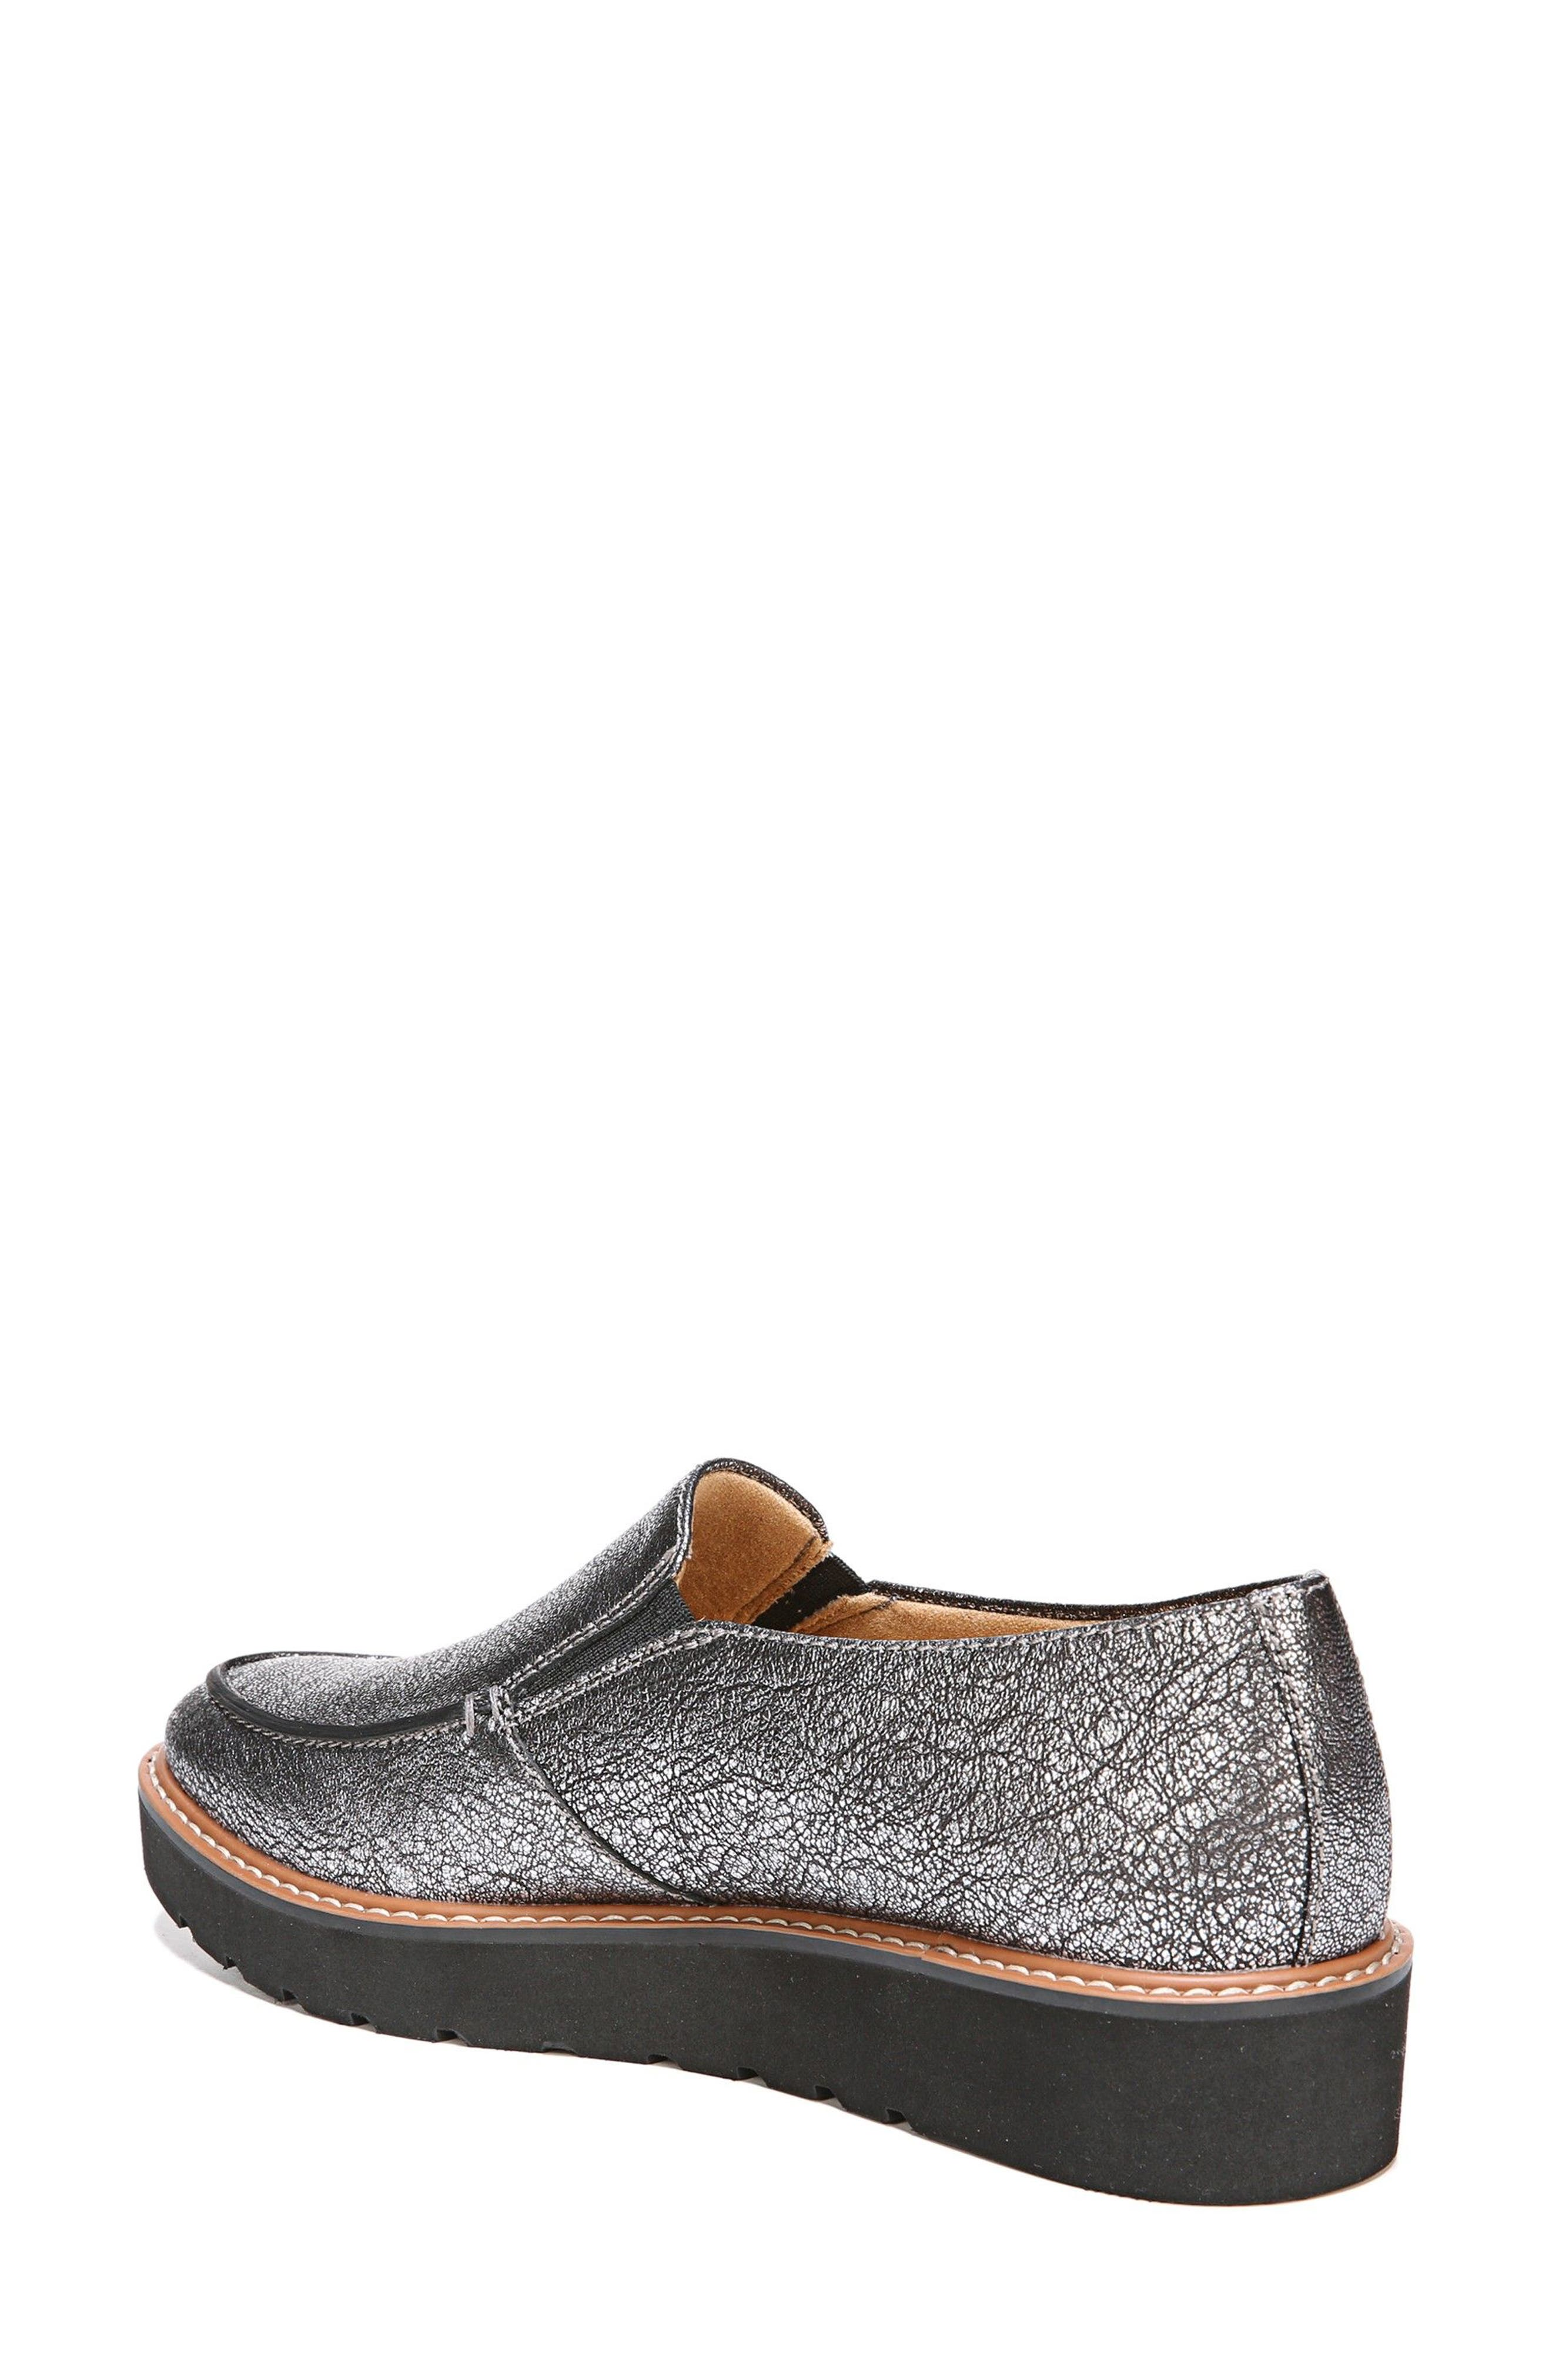 Aibileen Loafer,                             Alternate thumbnail 2, color,                             SILVER LEATHER